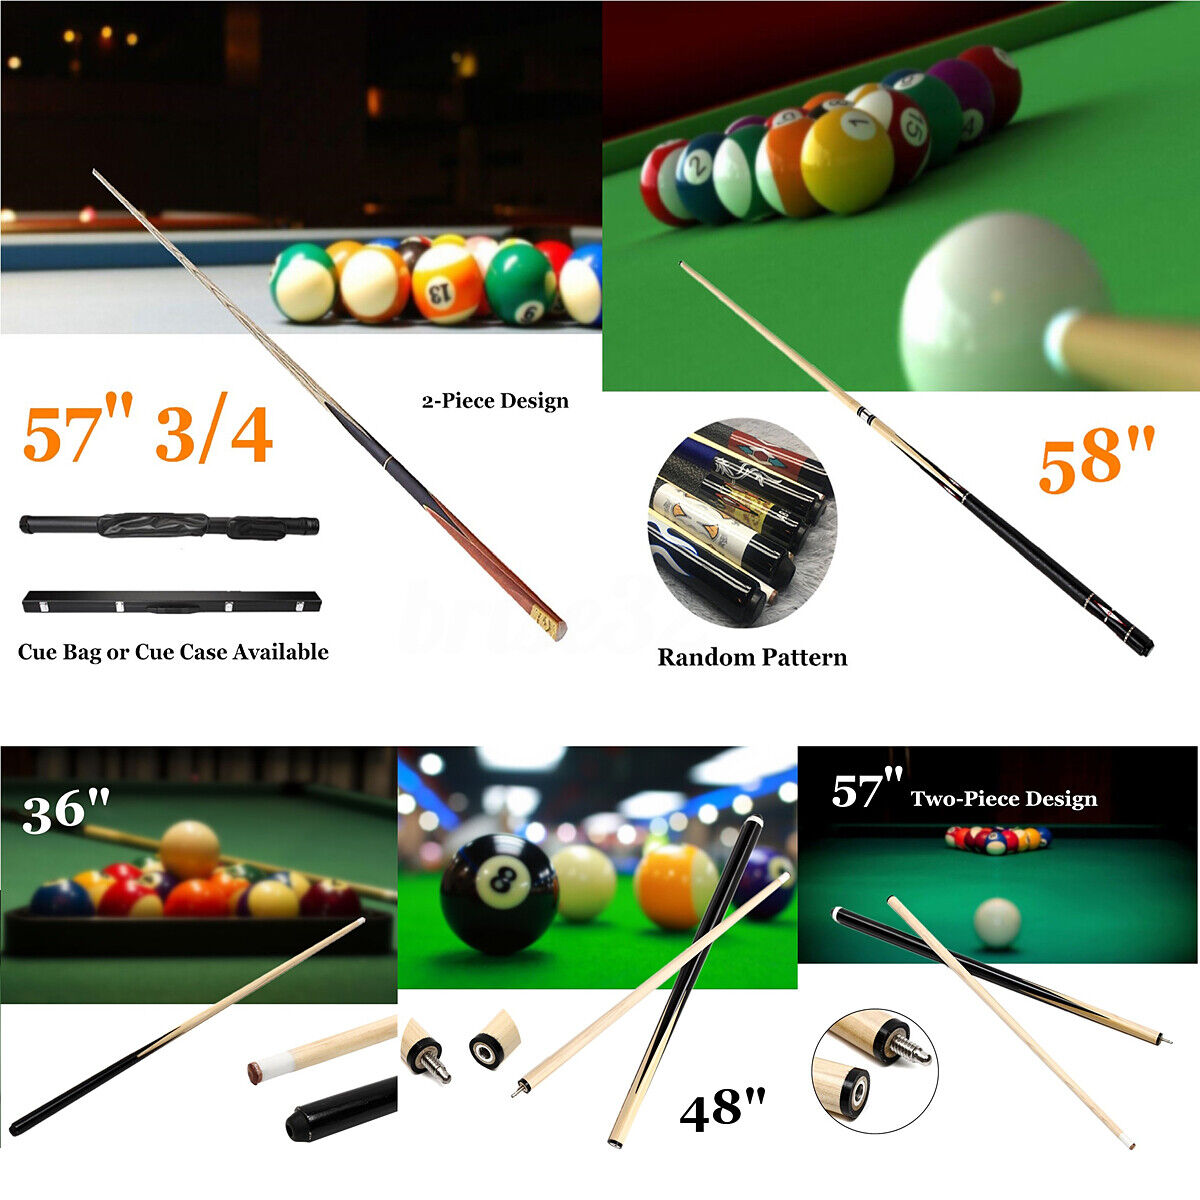 57/'/' Pool Snooker Billiard Cue 2-Piece 1//2 Eco Jointed Stick For Game Sport